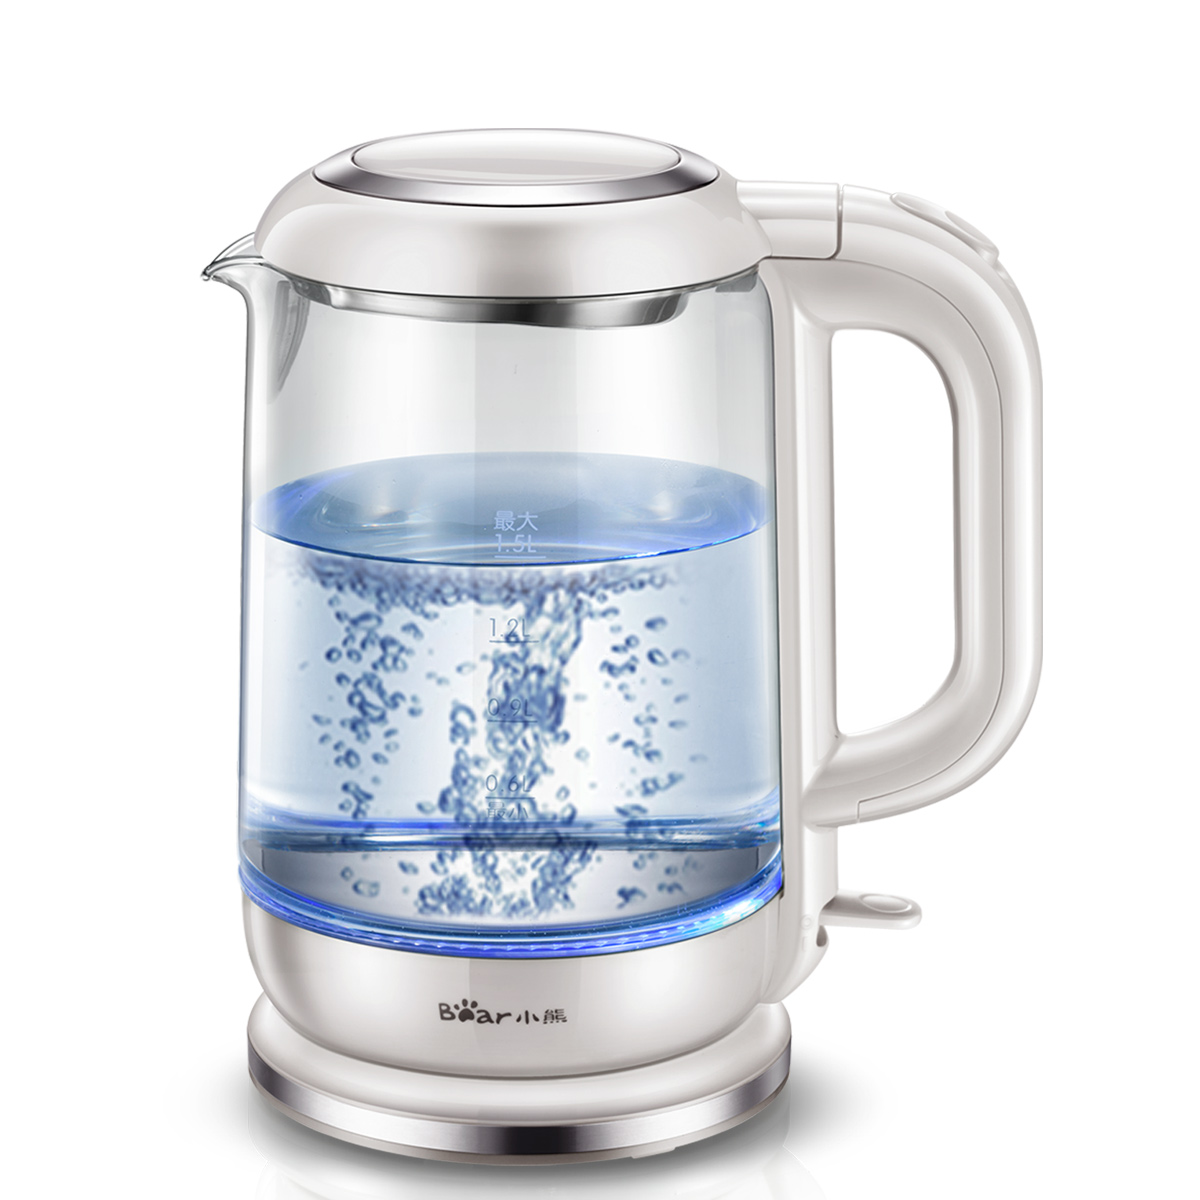 Household glass food grade 304 stainless steel electric kettle kitchen water pot 220v household 1 2l electric kettle food grade 304 stainless steel inner anti scald material fast boiling eu au uk plug